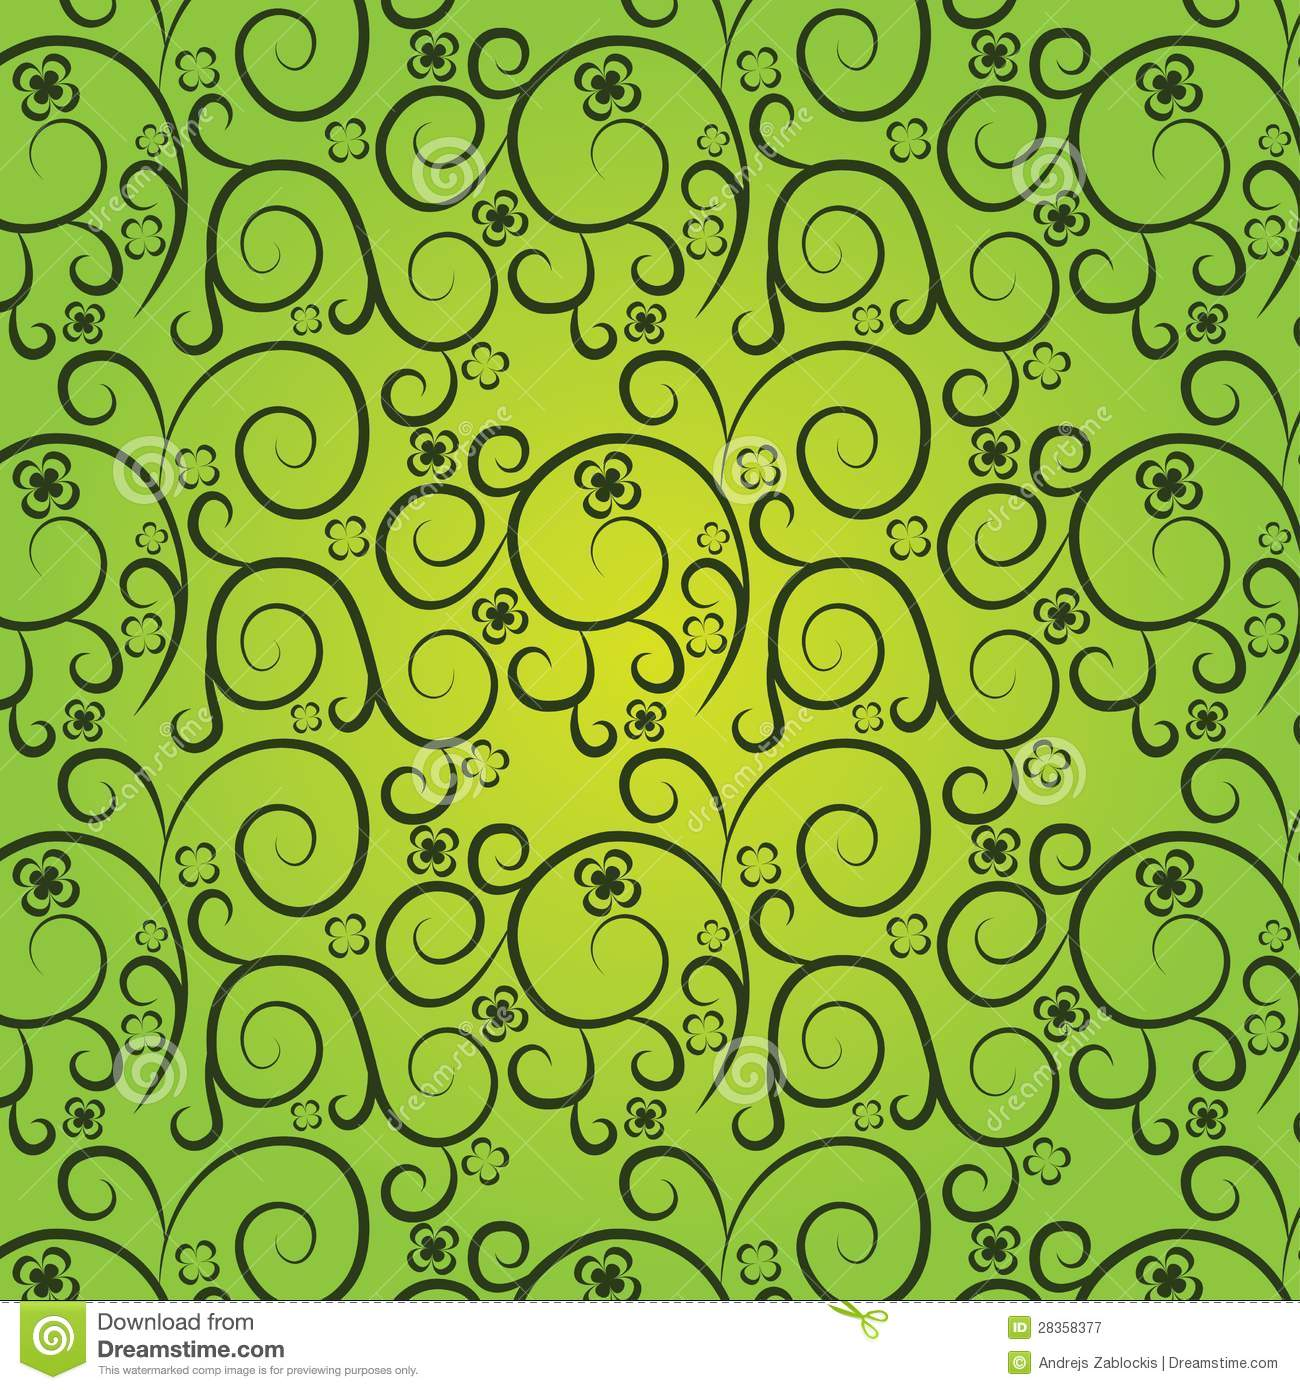 ... Free Stock Photography: Vintage floral pattern on a green background